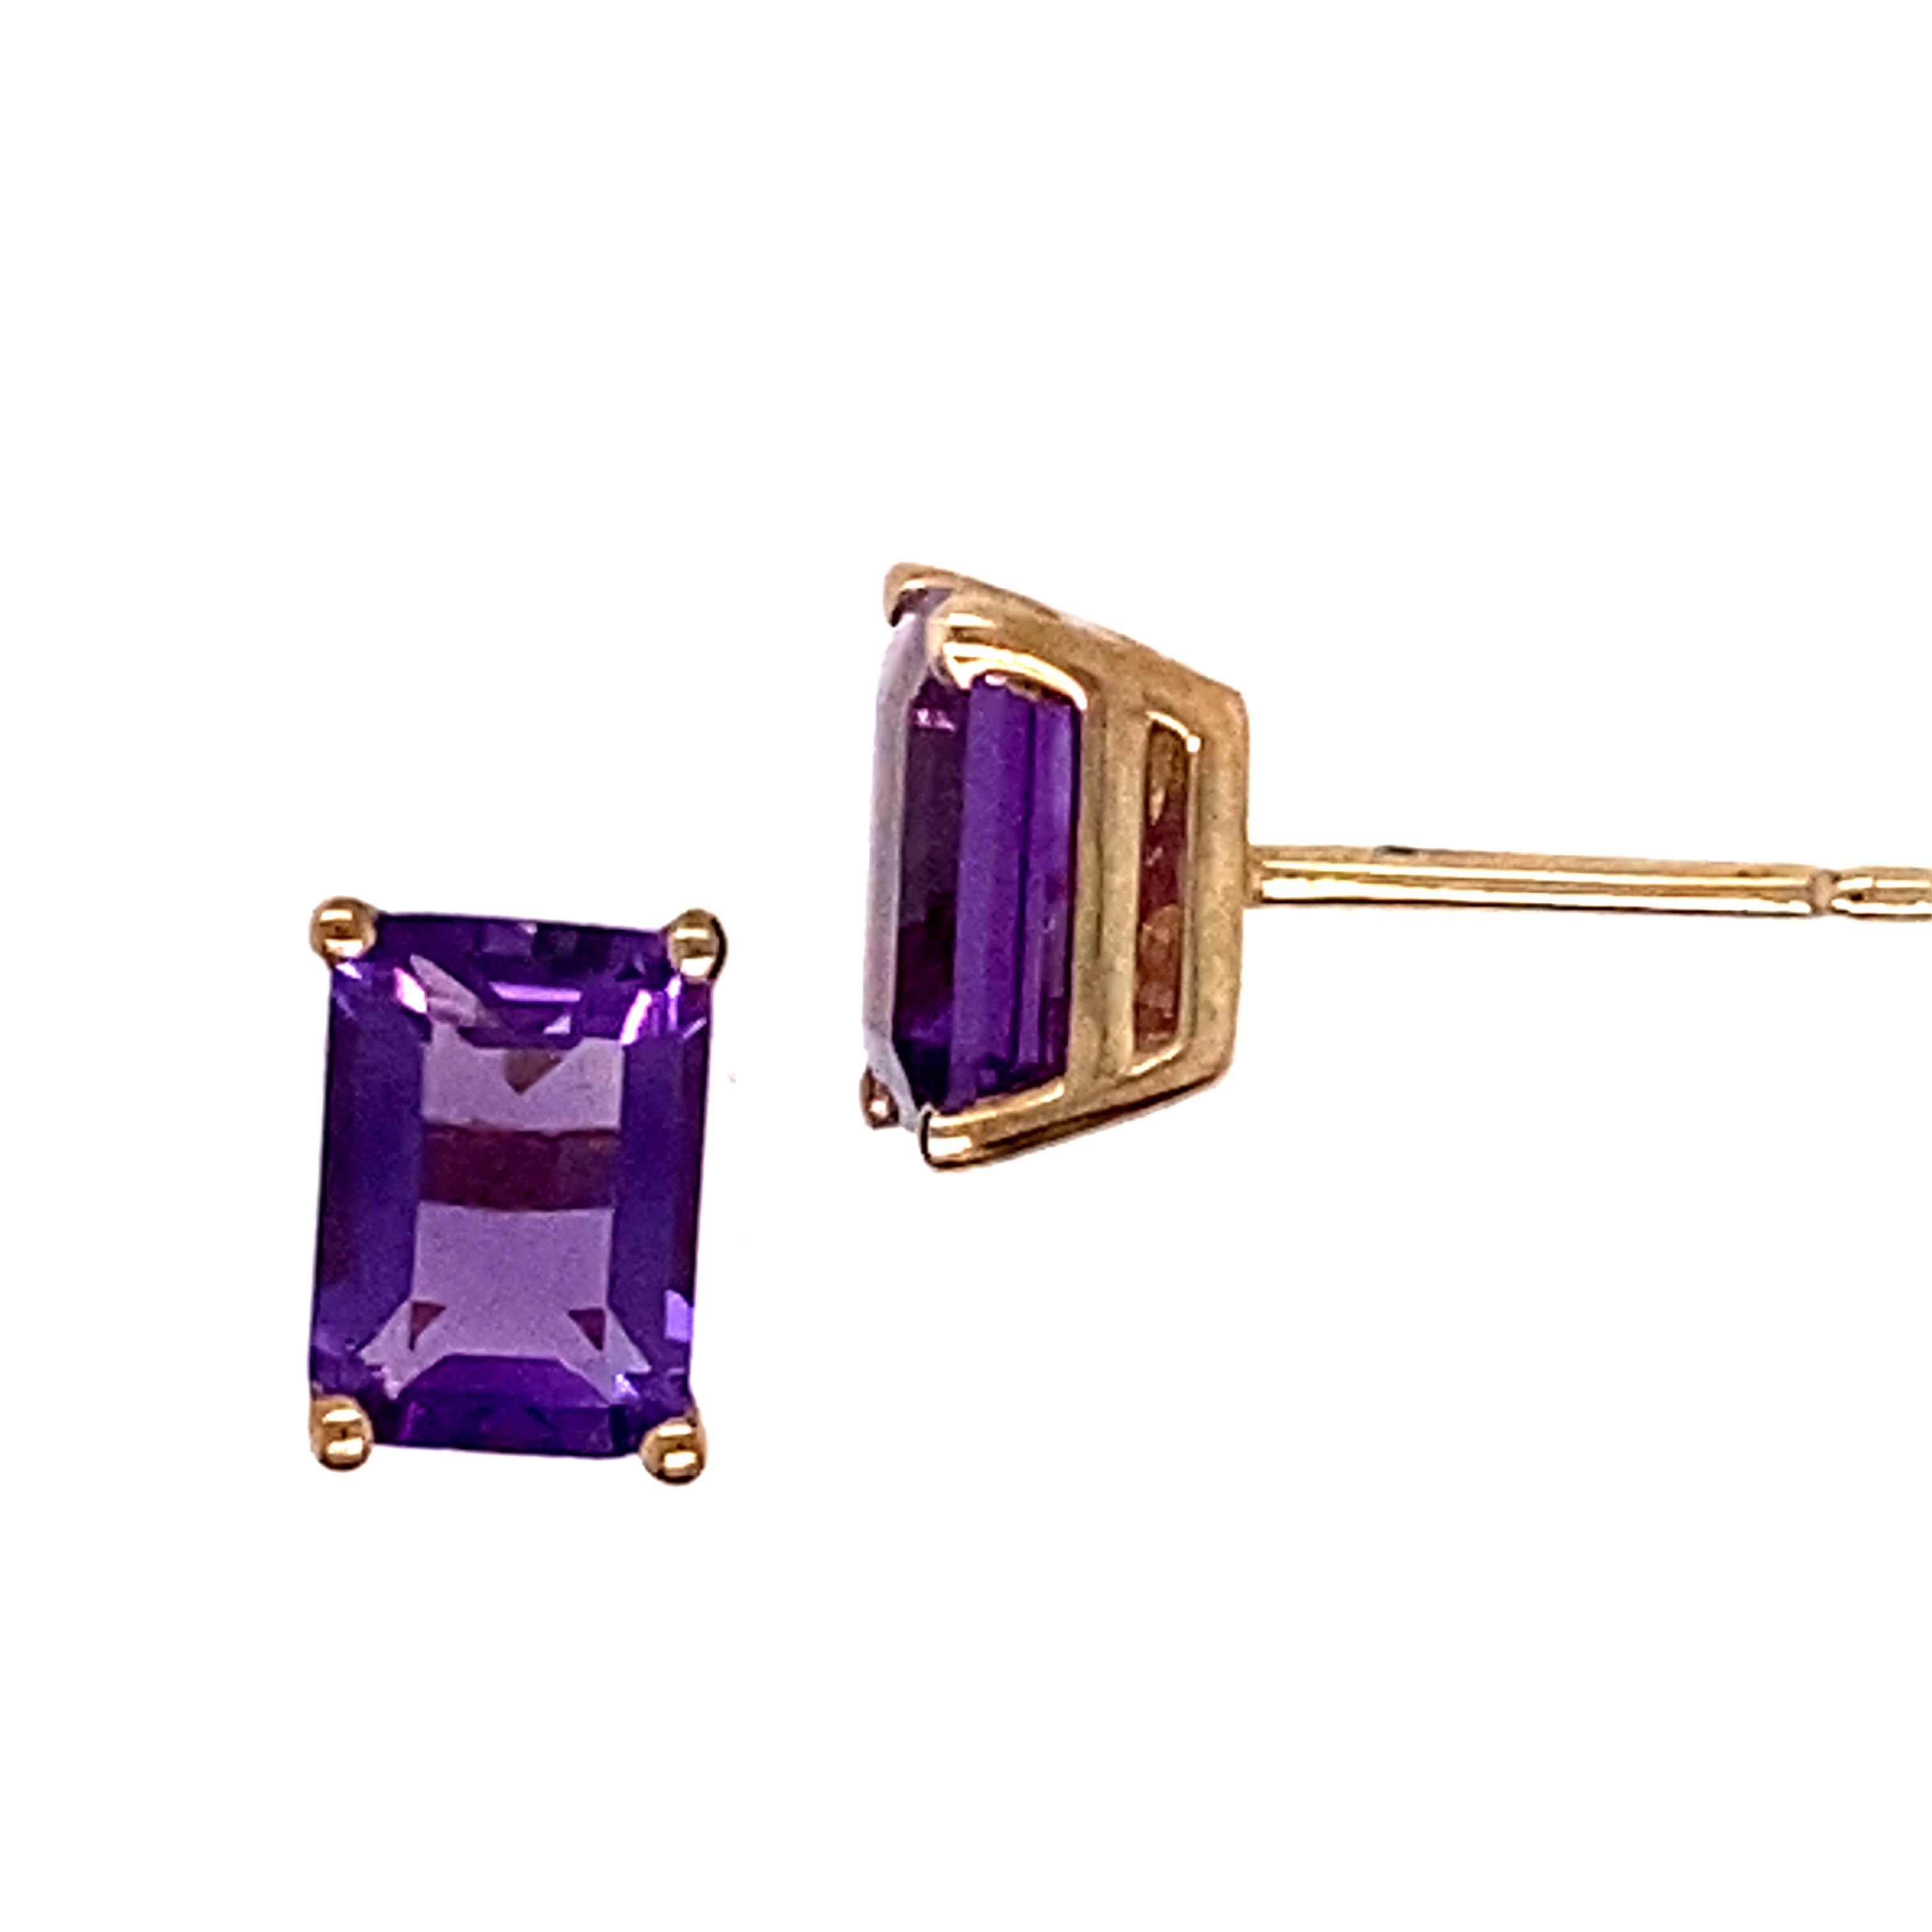 18 Carat Yellow Gold and Amethyst Studs